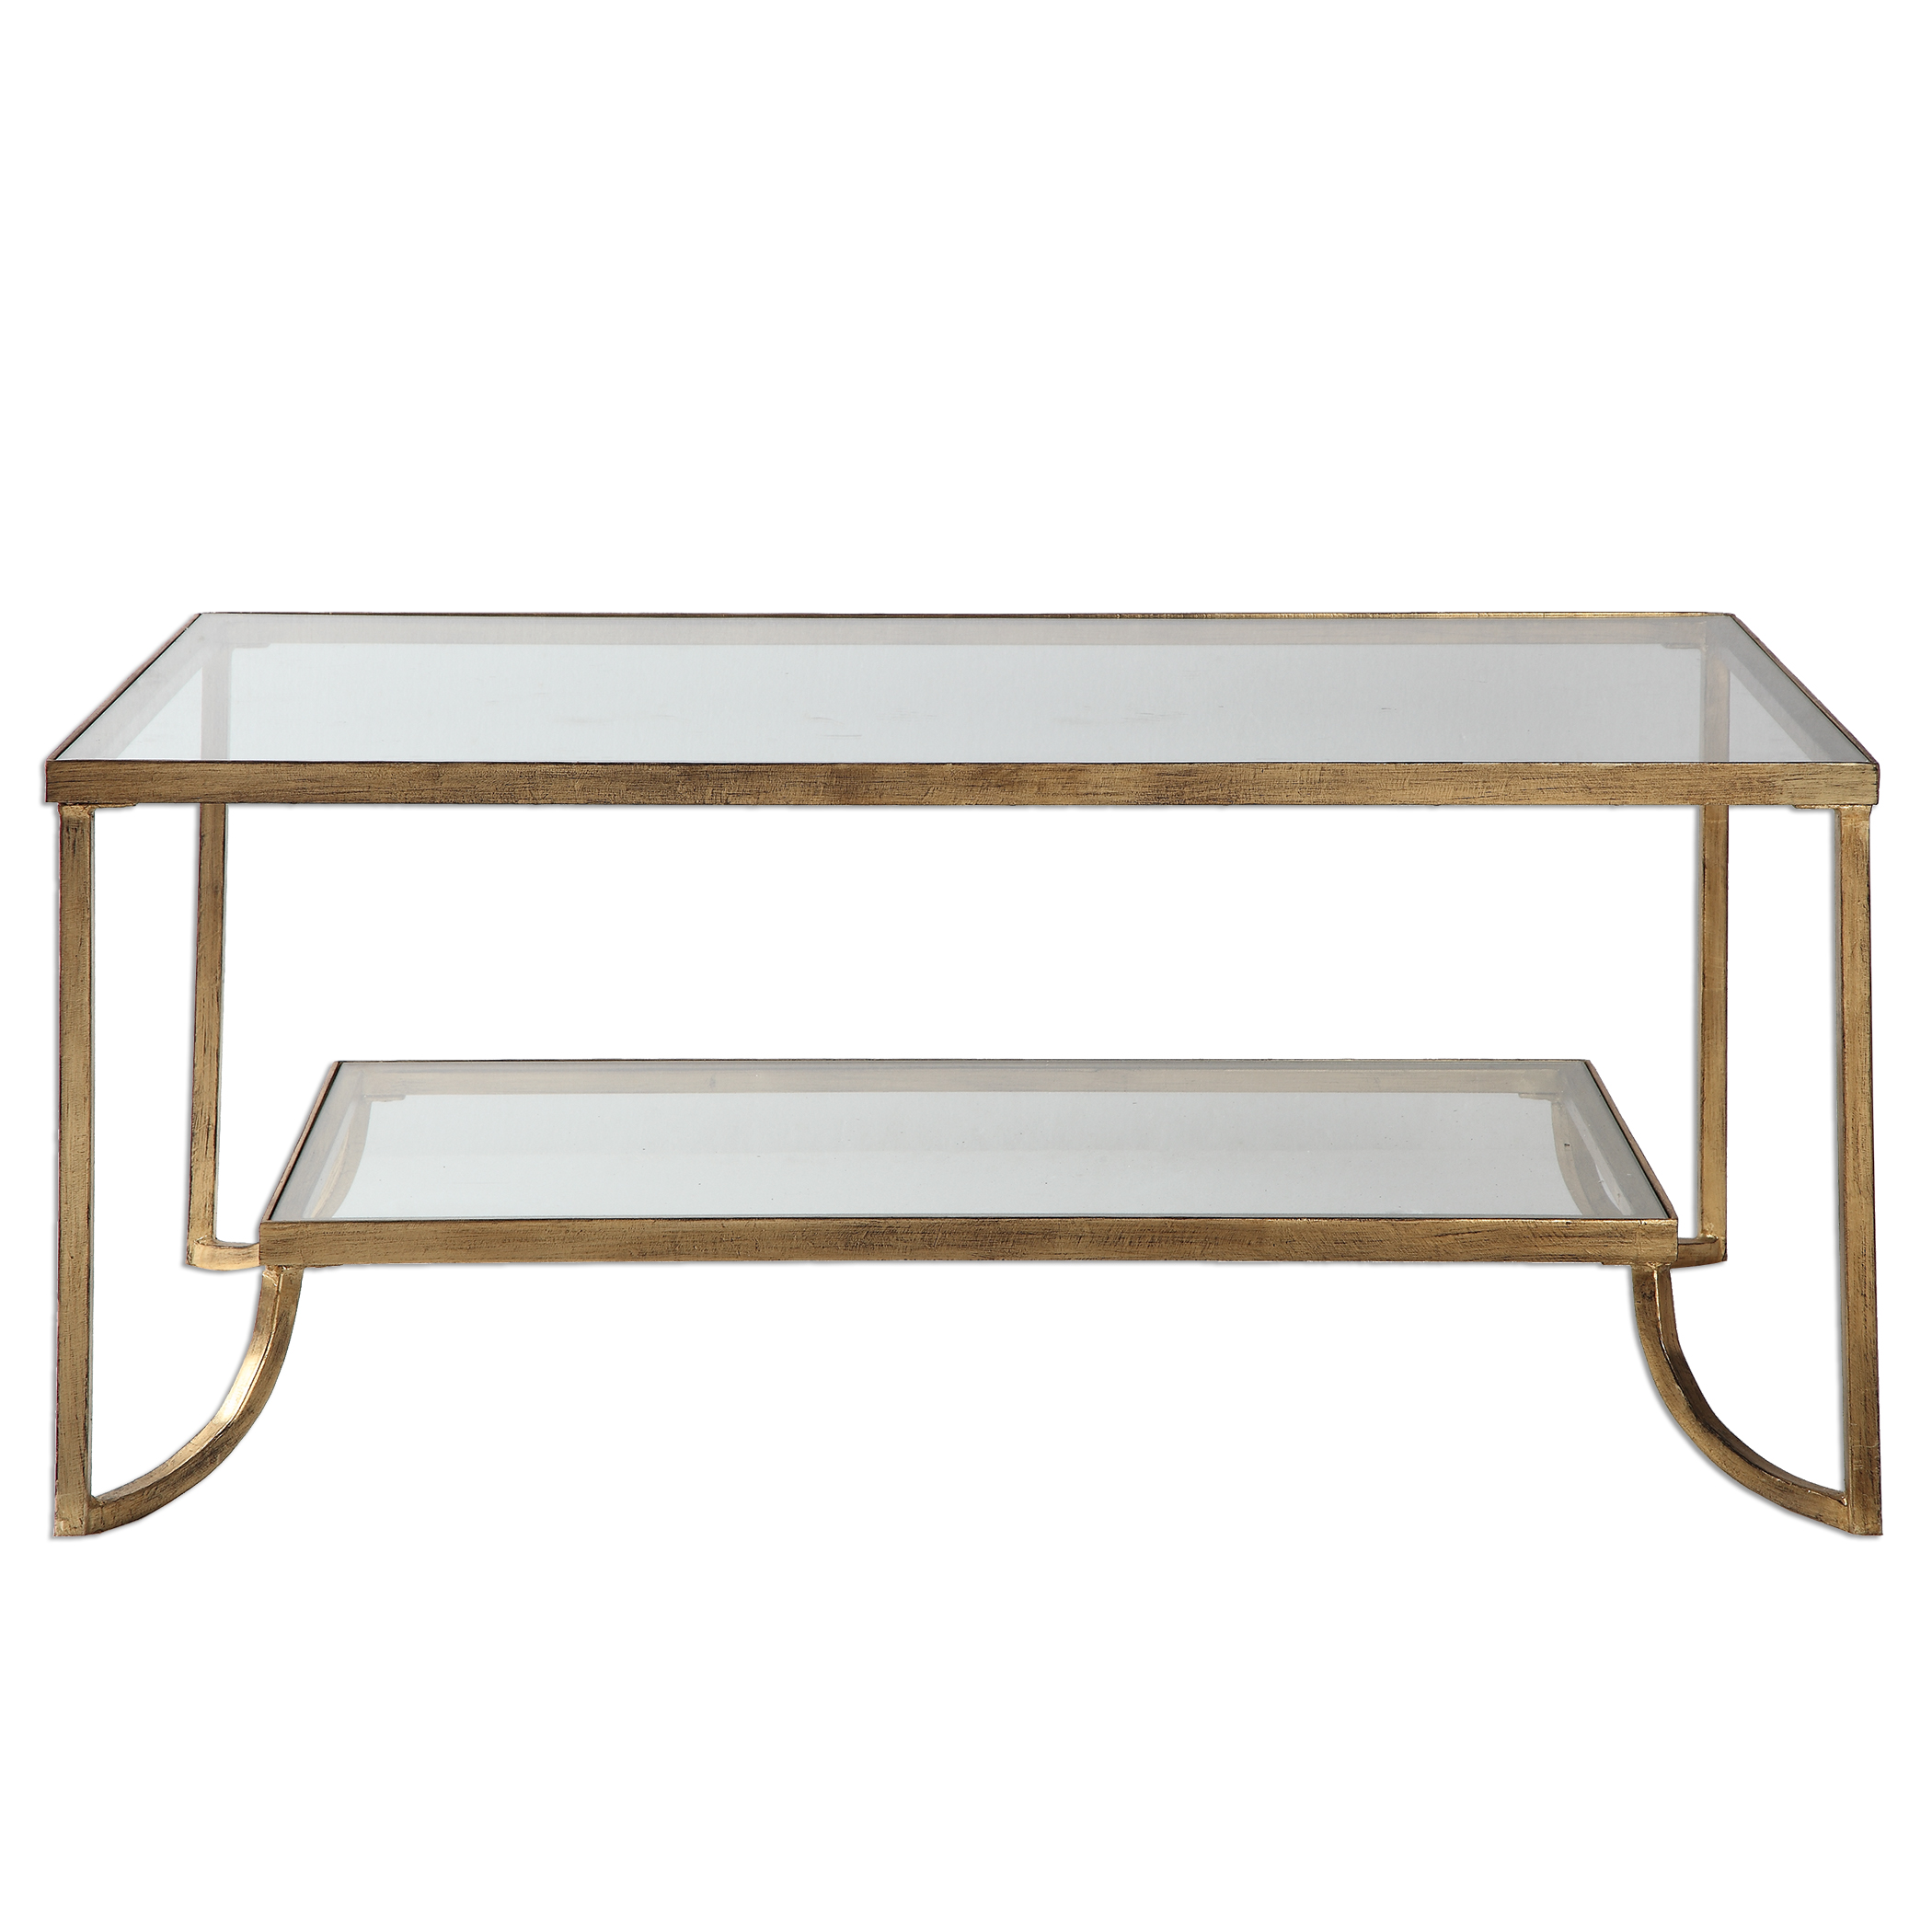 accent sofa thomasville fremont price uttermost furniture occasional tables katina gold leaf coffee table